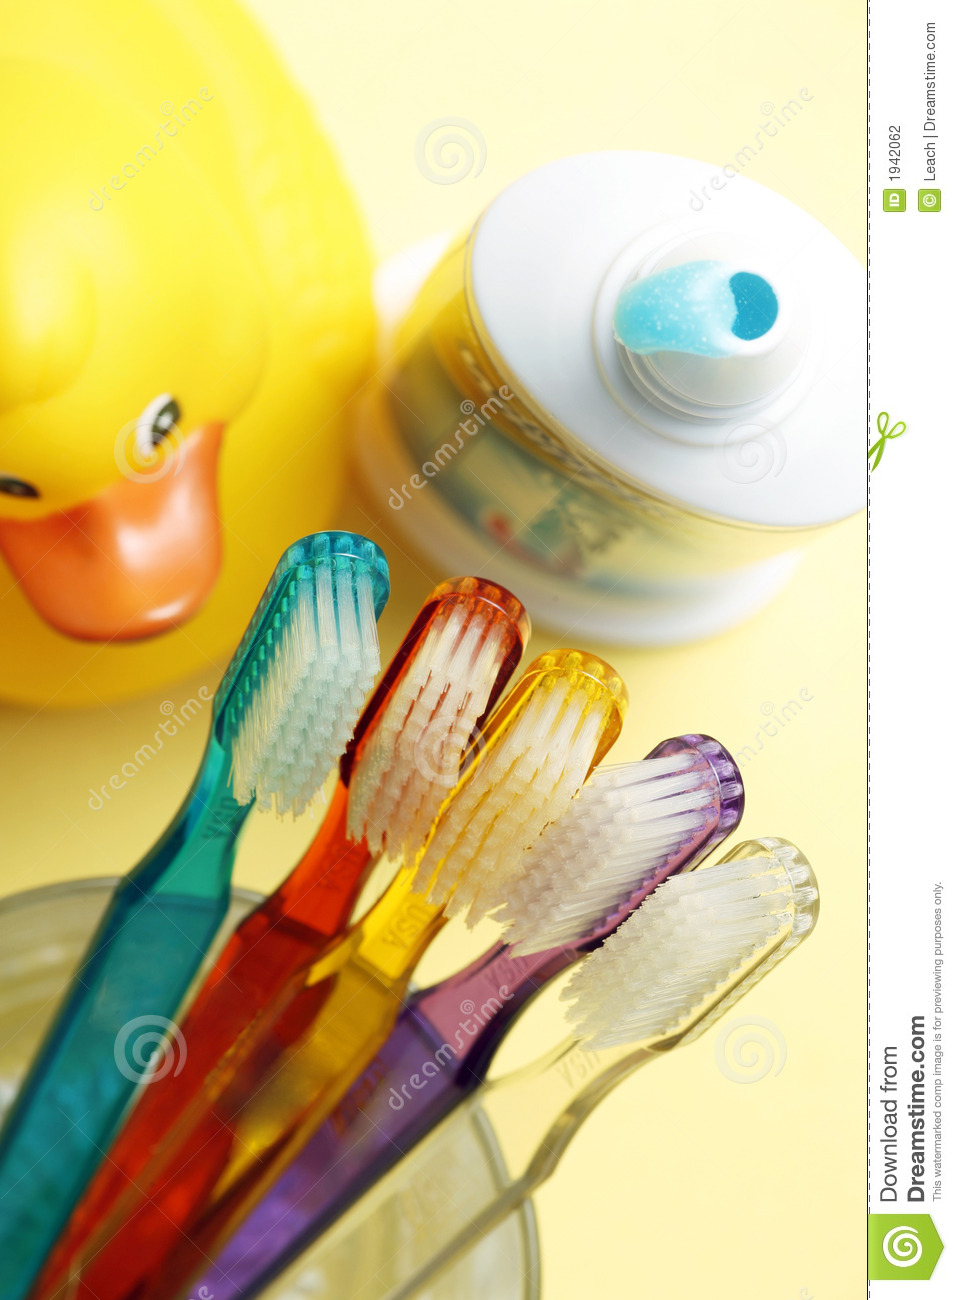 Families Toothbrushes, Toothpaste, Yellow Rubber Duck, Bathroom